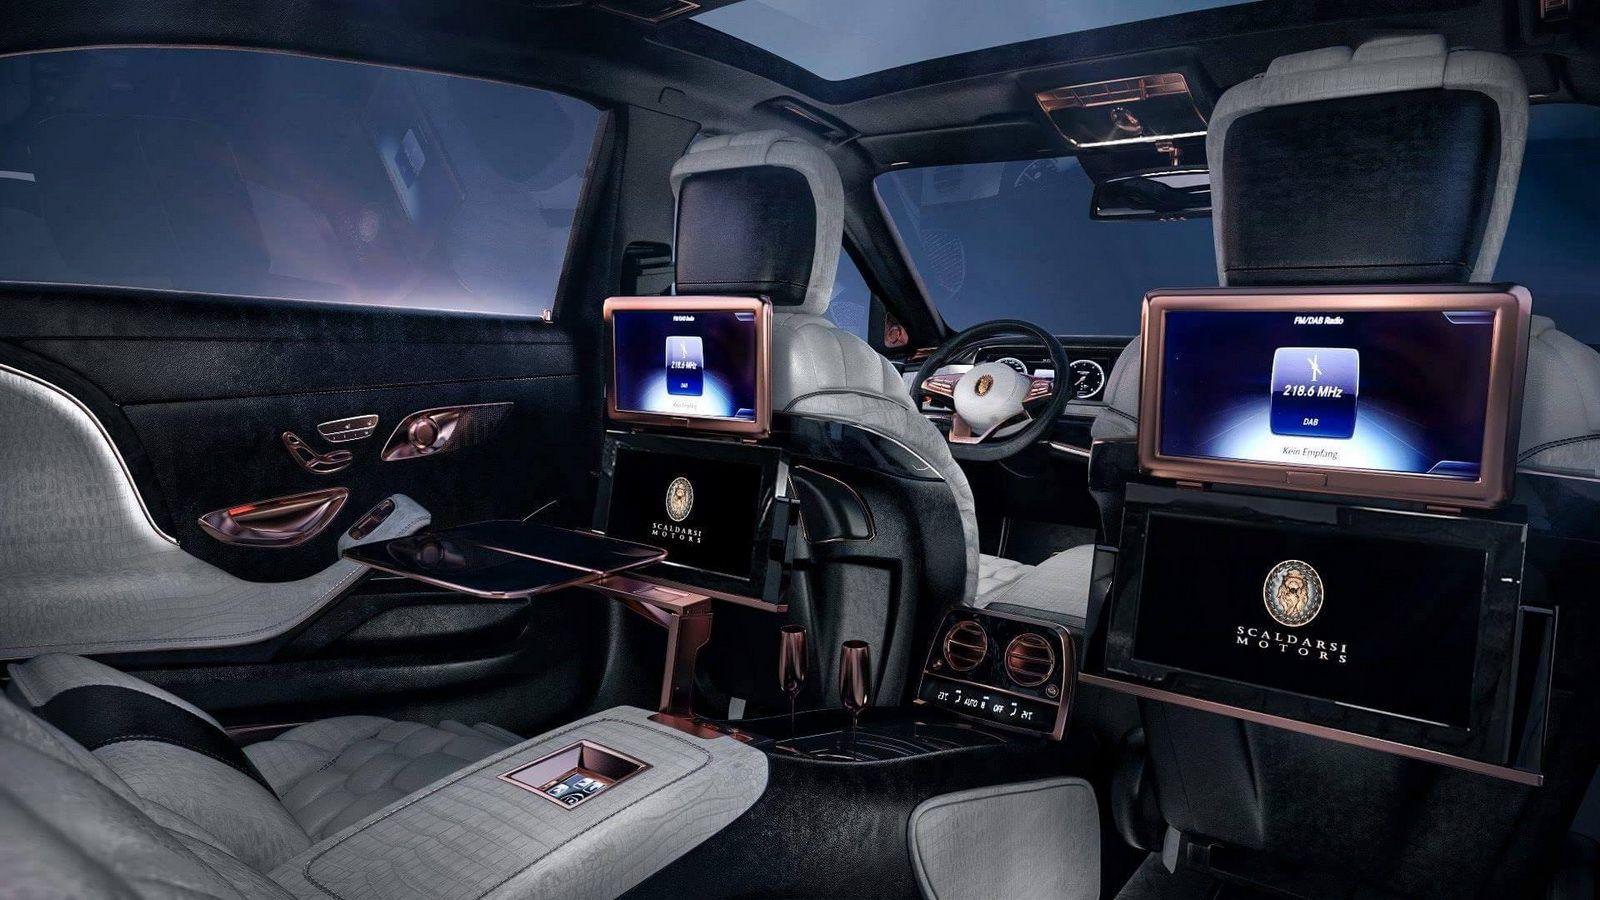 Scaldarsi Motors Maybach Based 1 5 Million Emperor I Is A Sight To Behold Carscoops Maybach Mercedes Maybach Mercedes Maybach S600